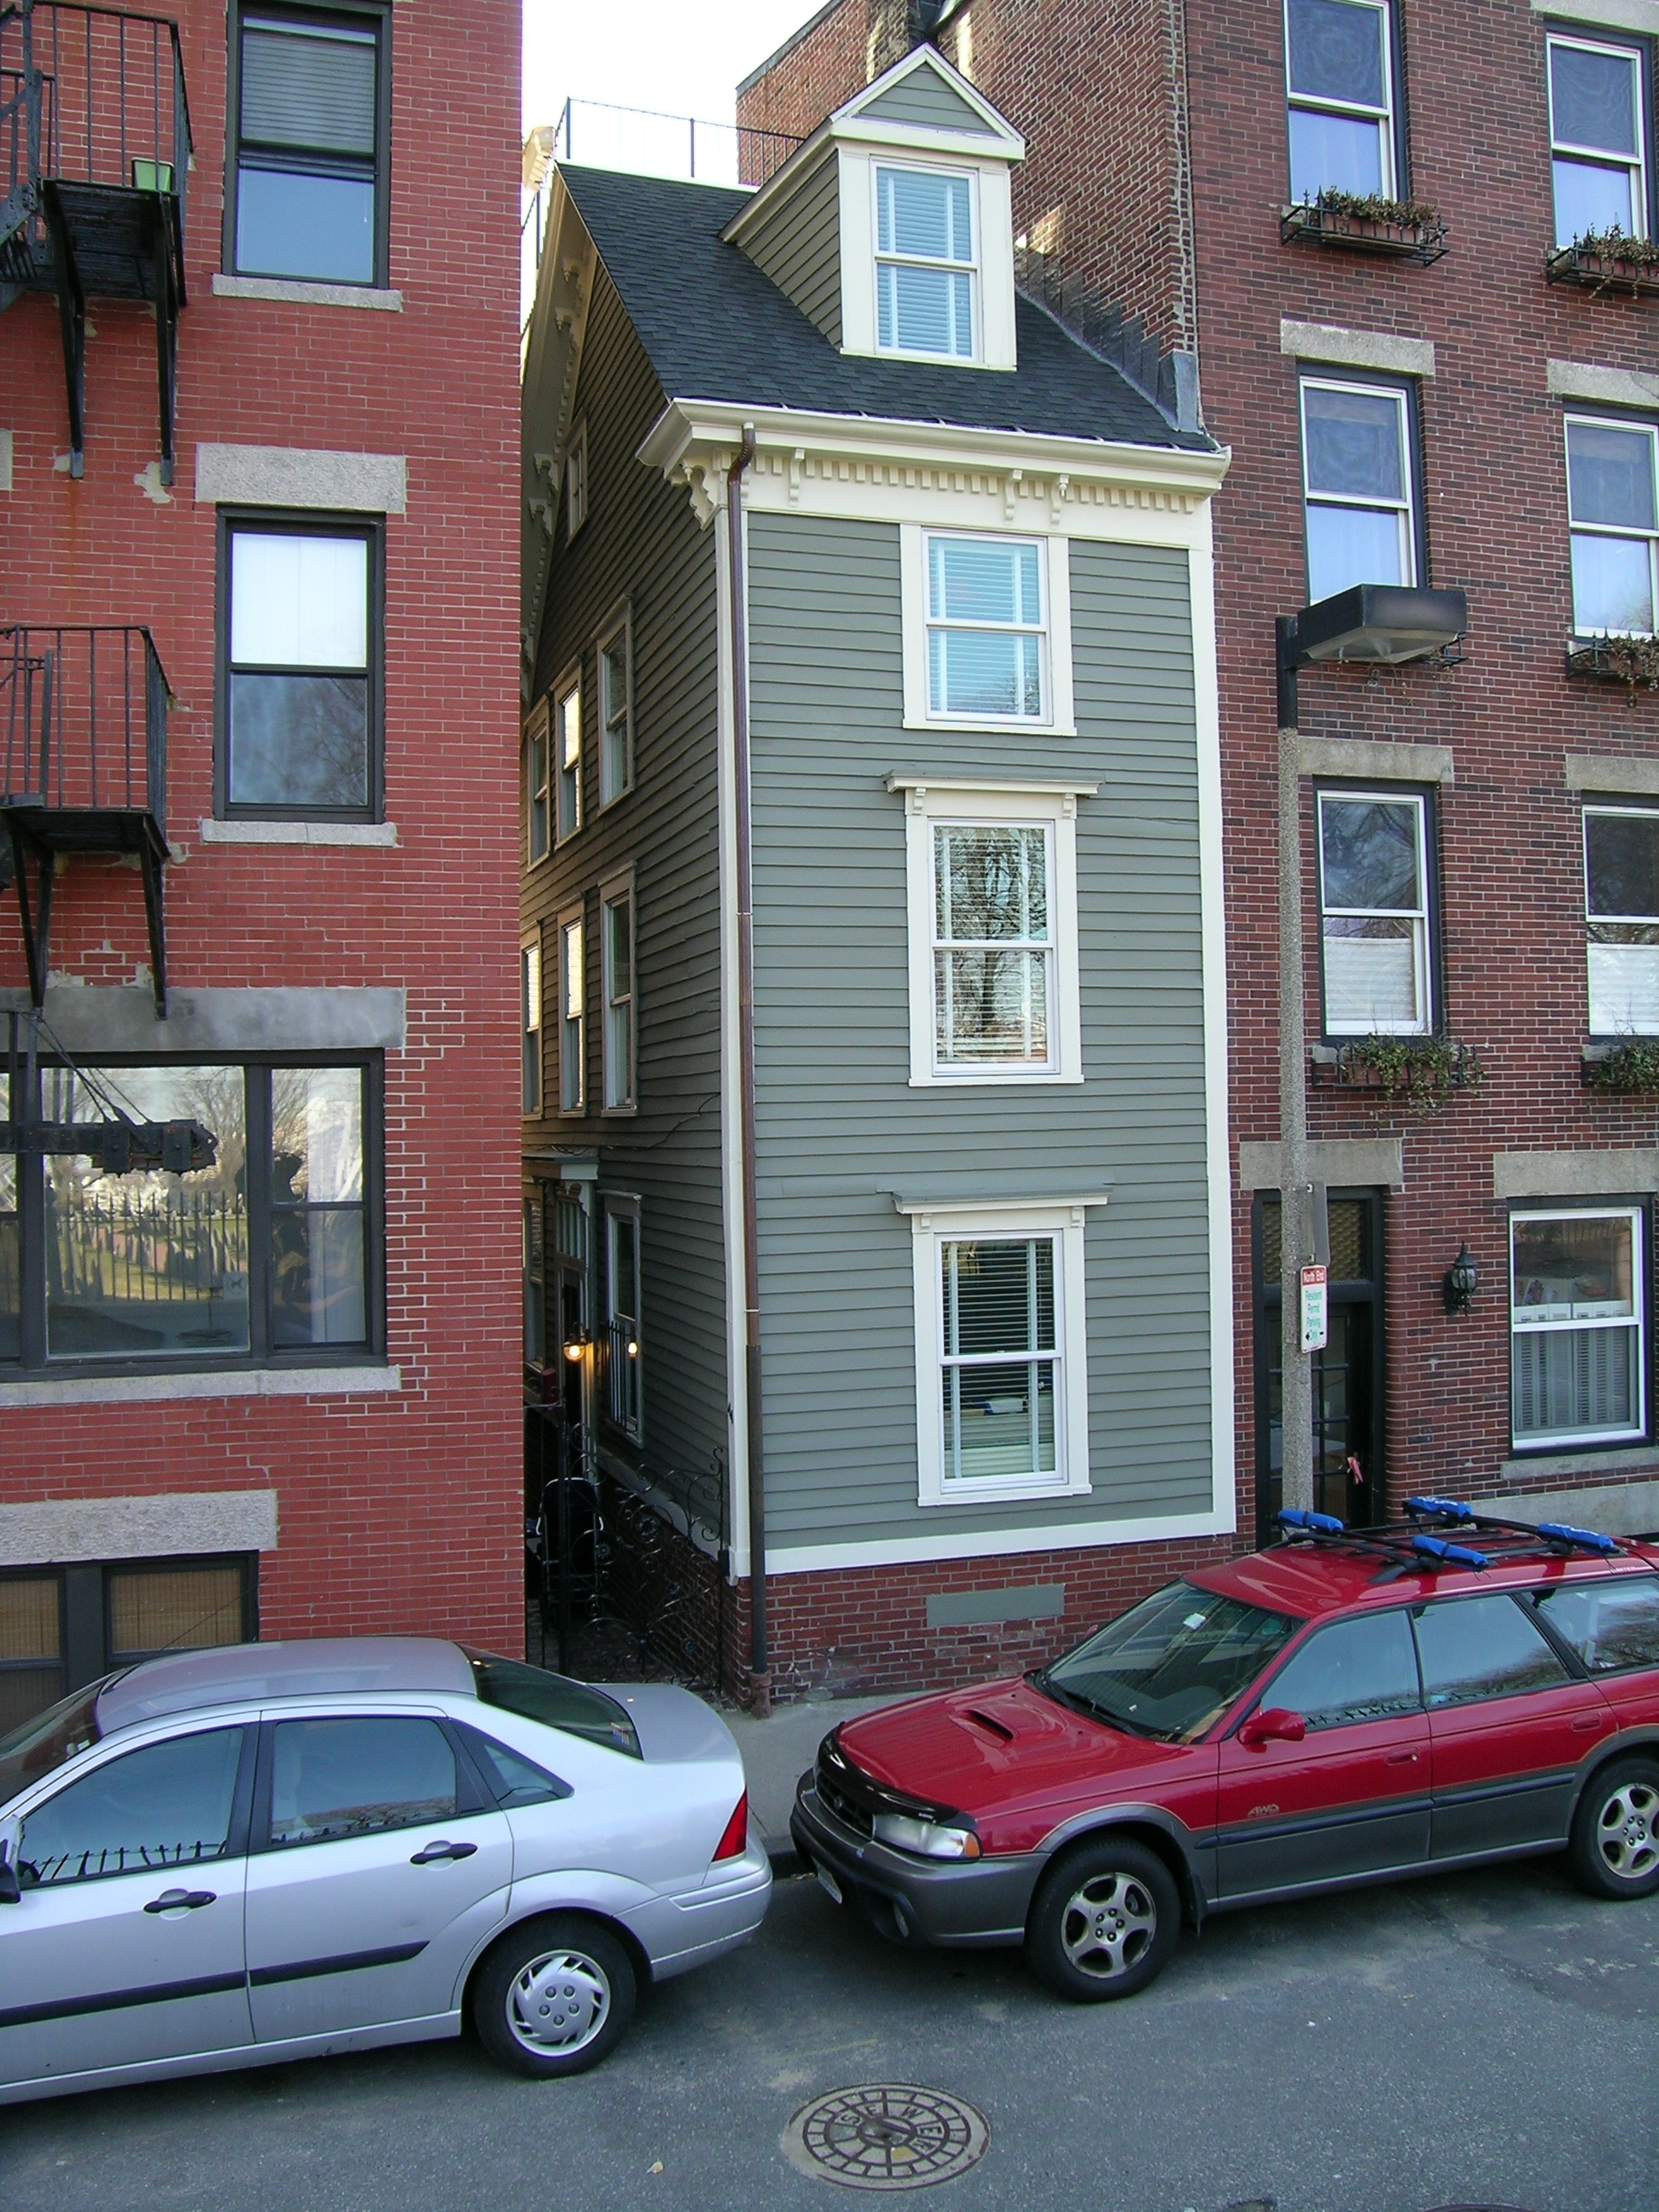 spite house wikipedia the skinny house in the north end of boston massachusetts is a four story building reported by the boston globe as having the